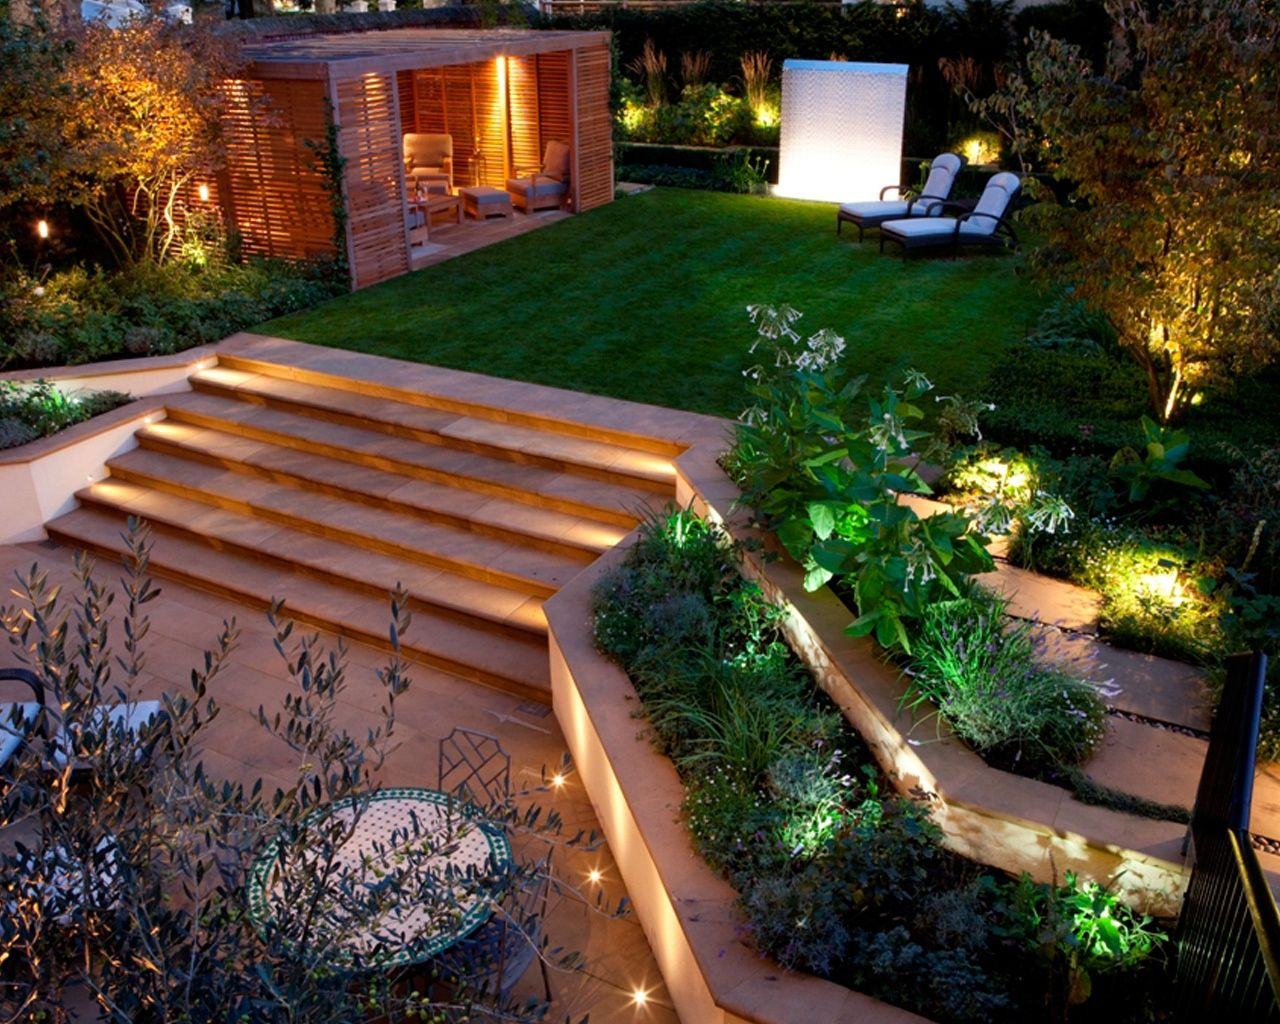 50 modern garden design ideas to try in 2017 - Garden Design Ideas